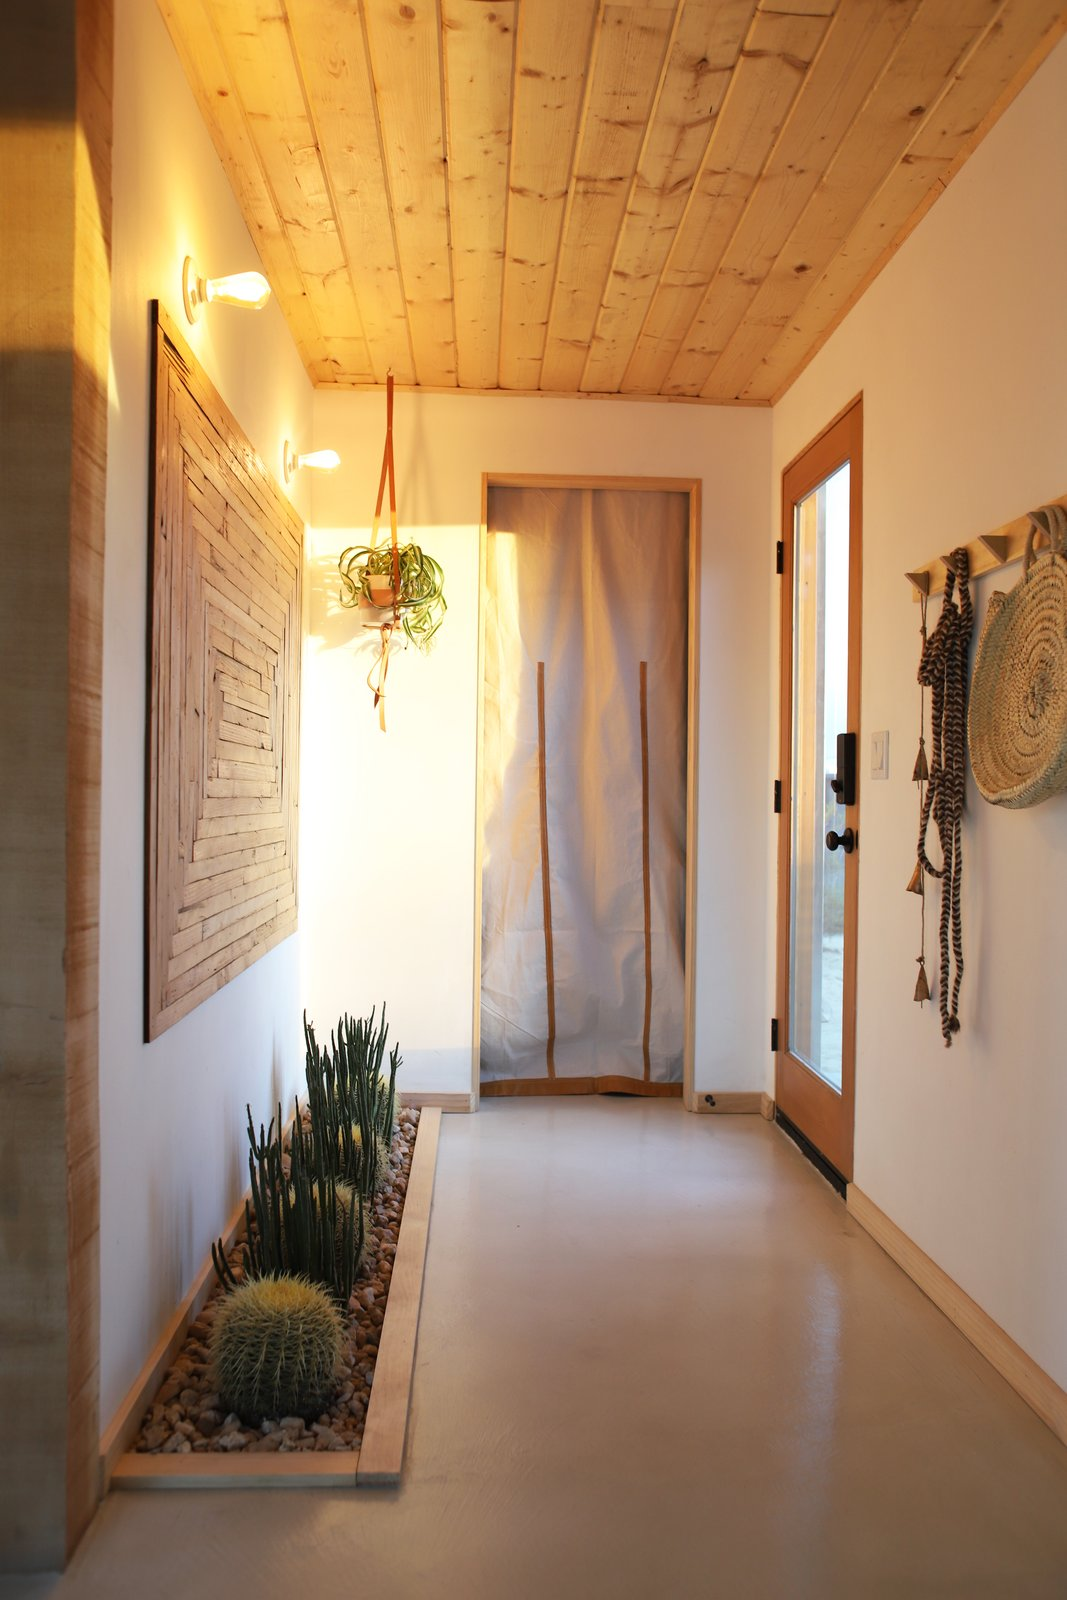 The entrance to the home, a curtain blocks.....